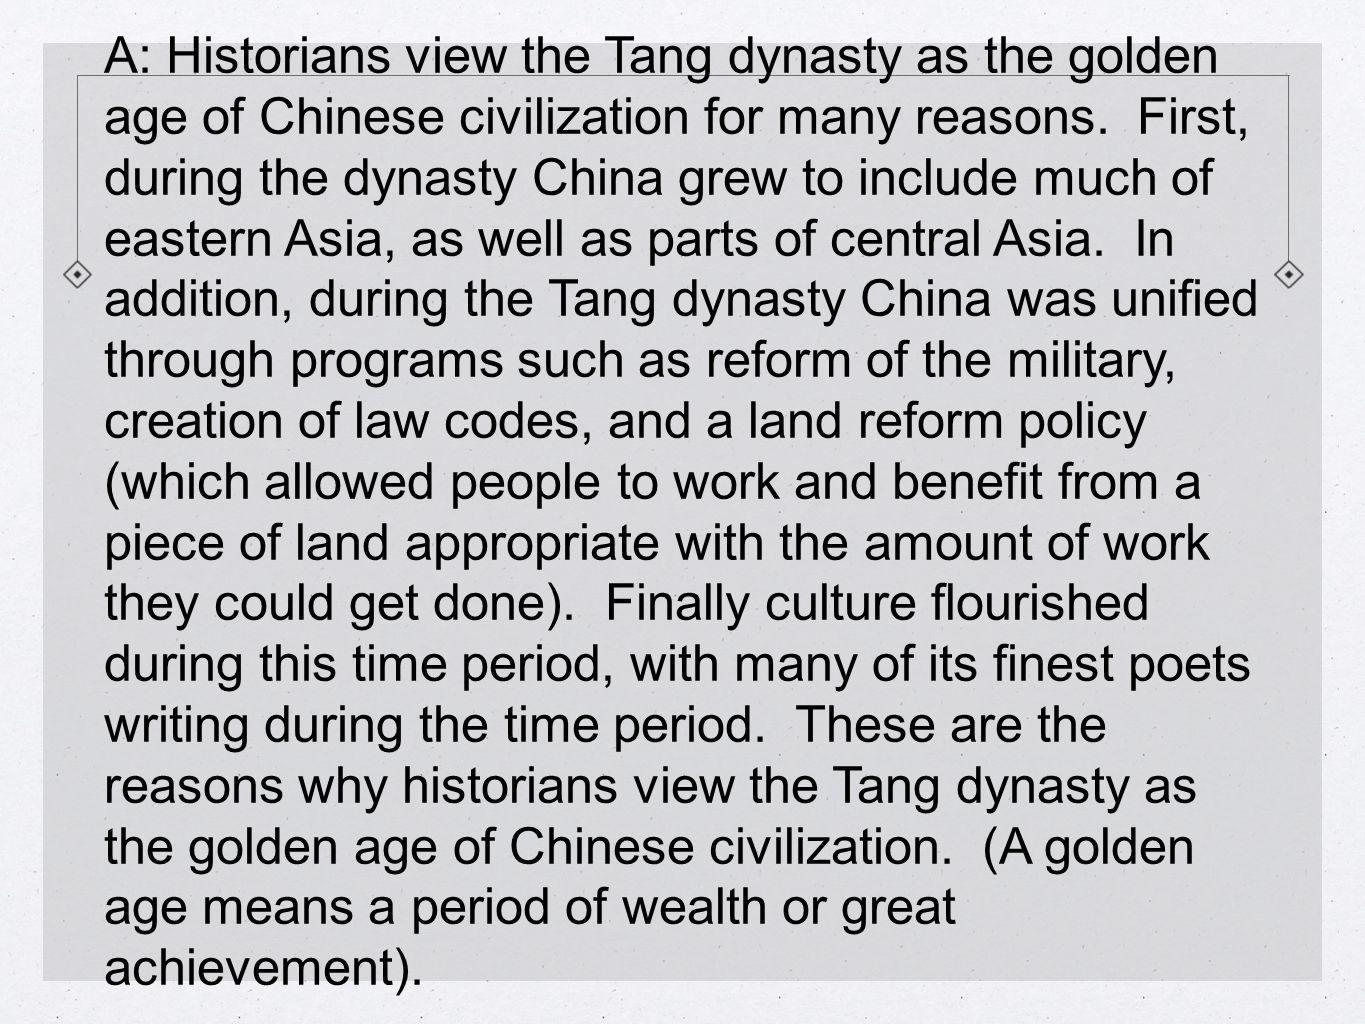 A: Historians view the Tang dynasty as the golden age of Chinese civilization for many reasons.